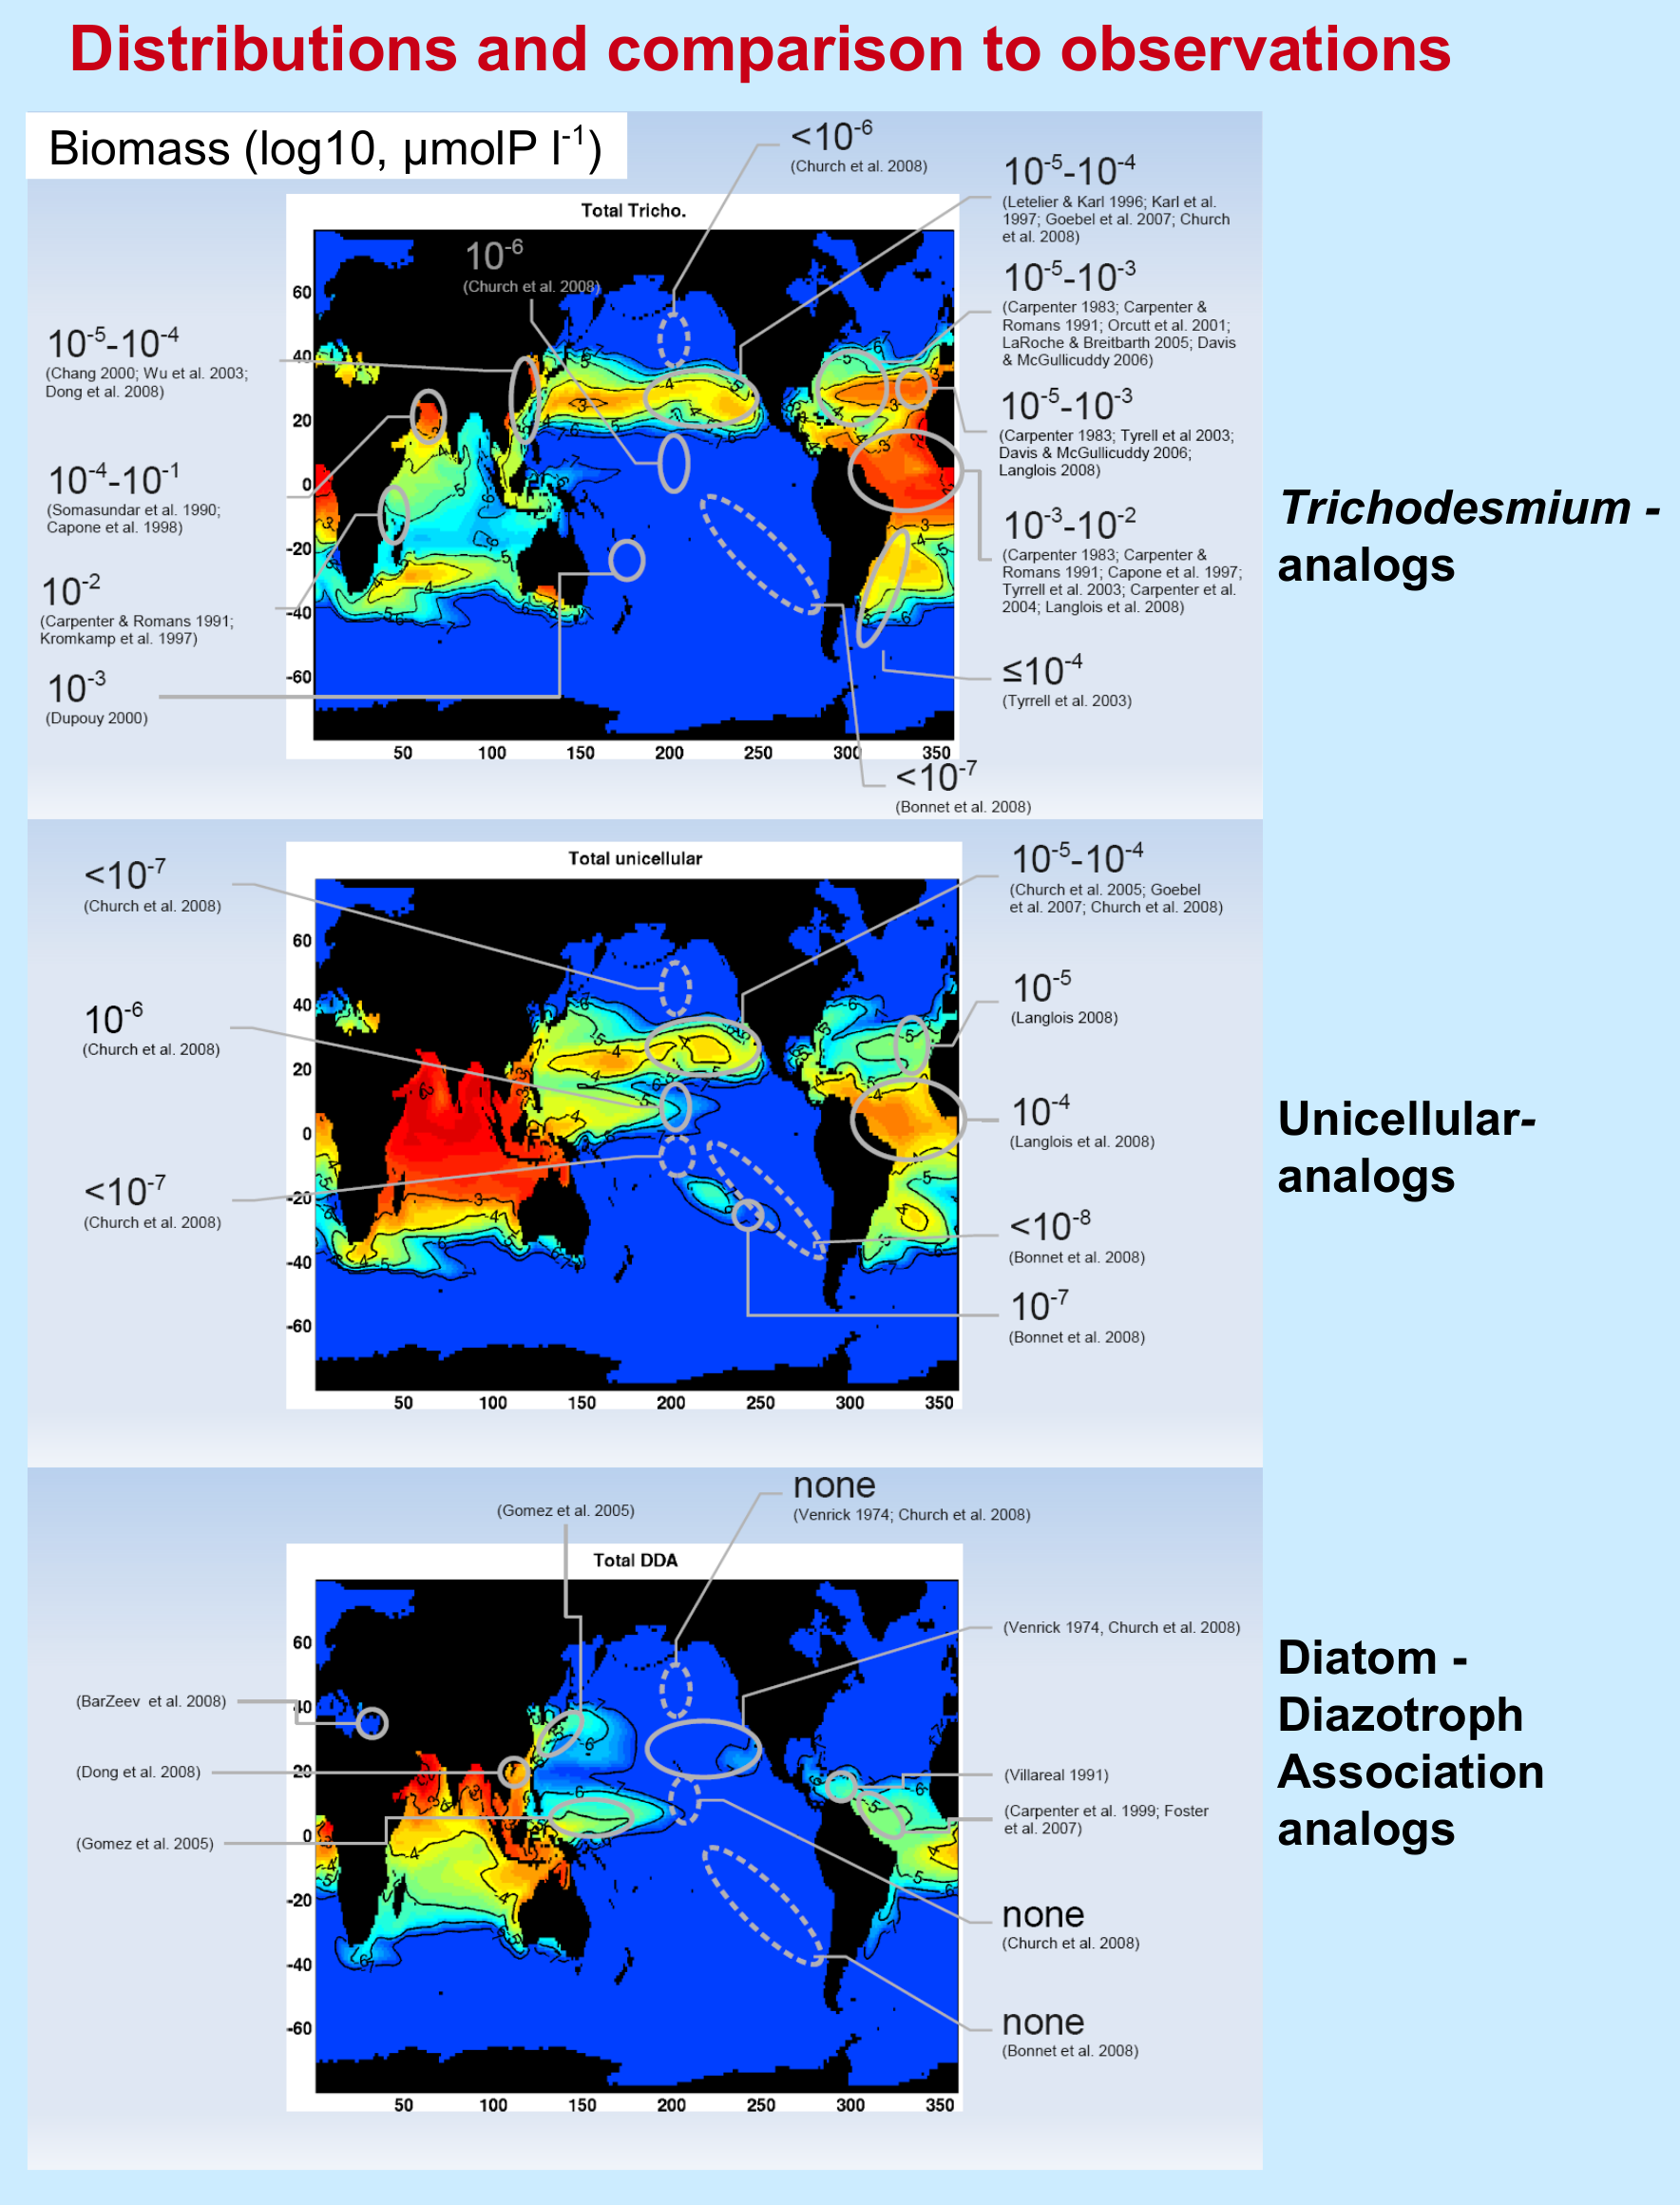 Figure 3. Distribution of modeled Trichodesmium analog biomass compared with observations (top panel), the same but for unicellular analogs (middle) and Diatom-Diazotroph Association analogs (bottom). (Published observations converted to estimated phosphorus biomass).